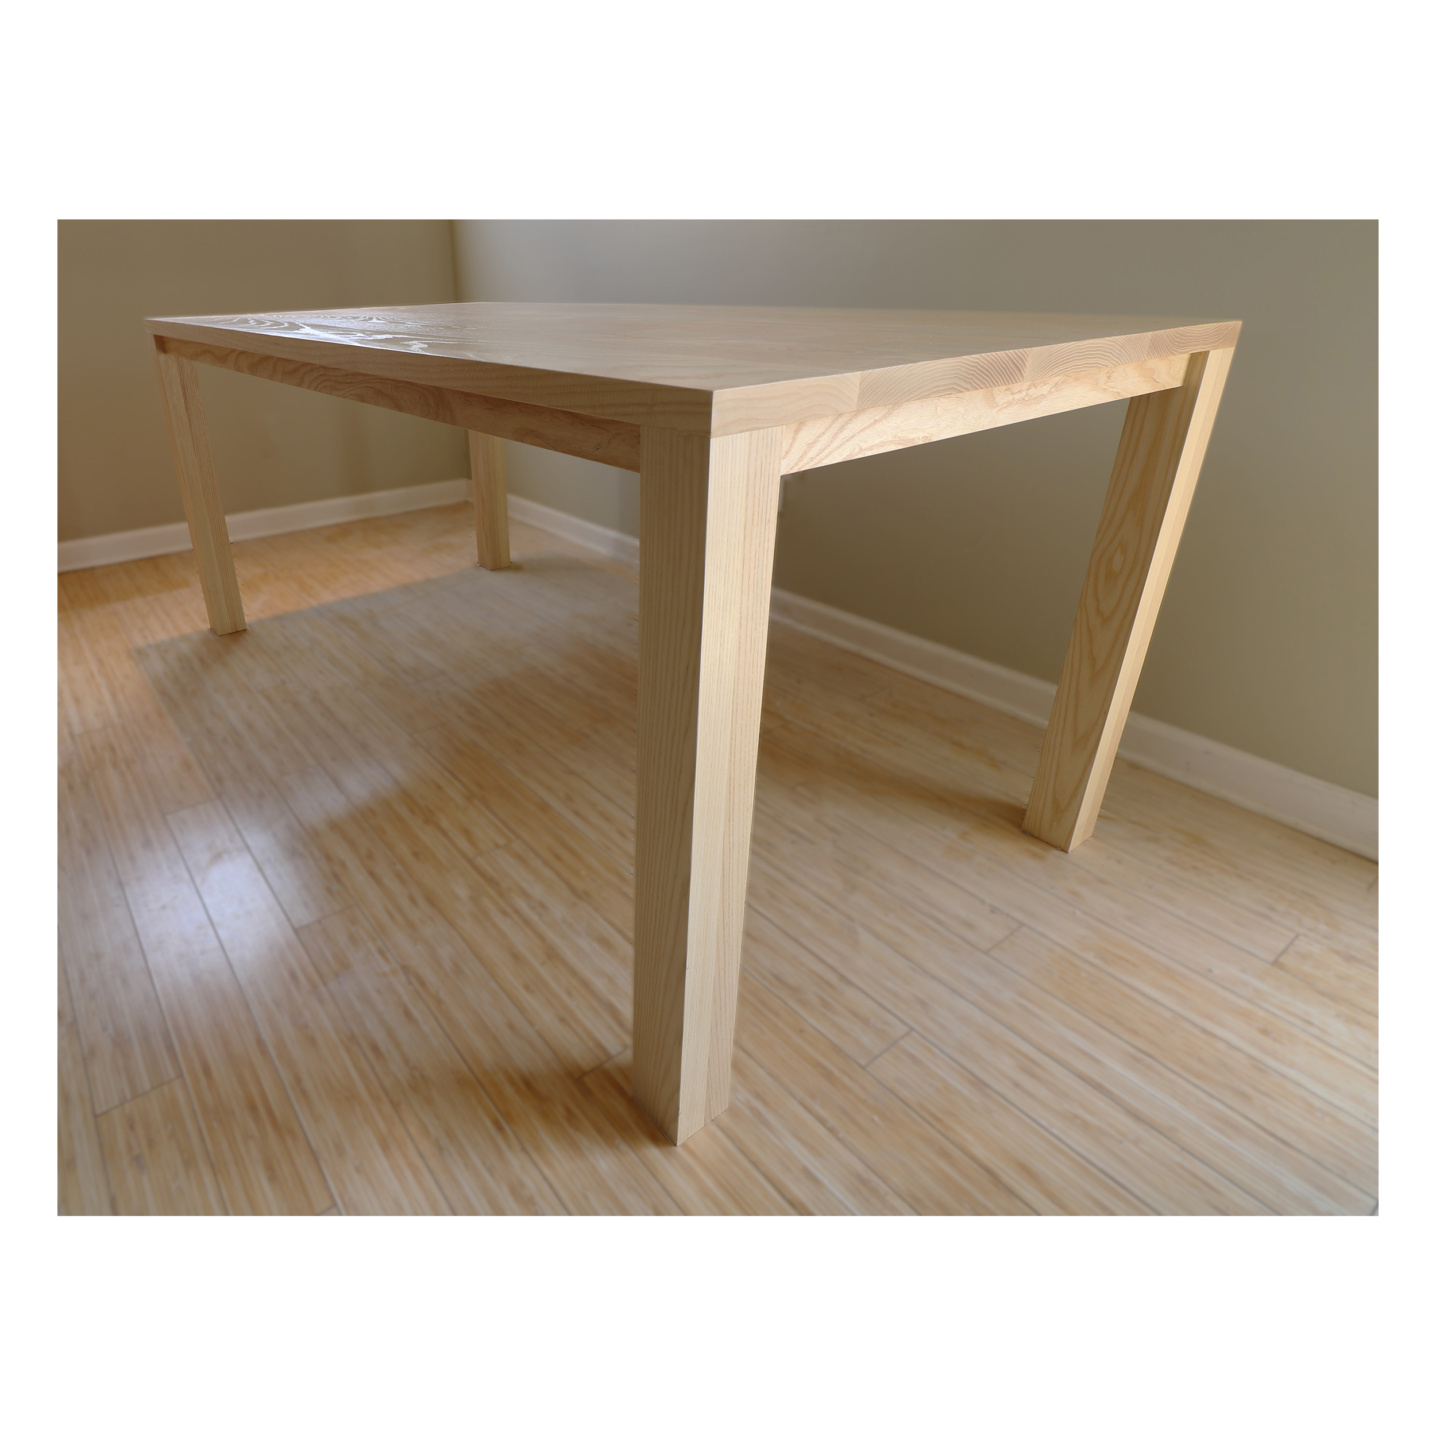 8 foot long solid wood dinning room table